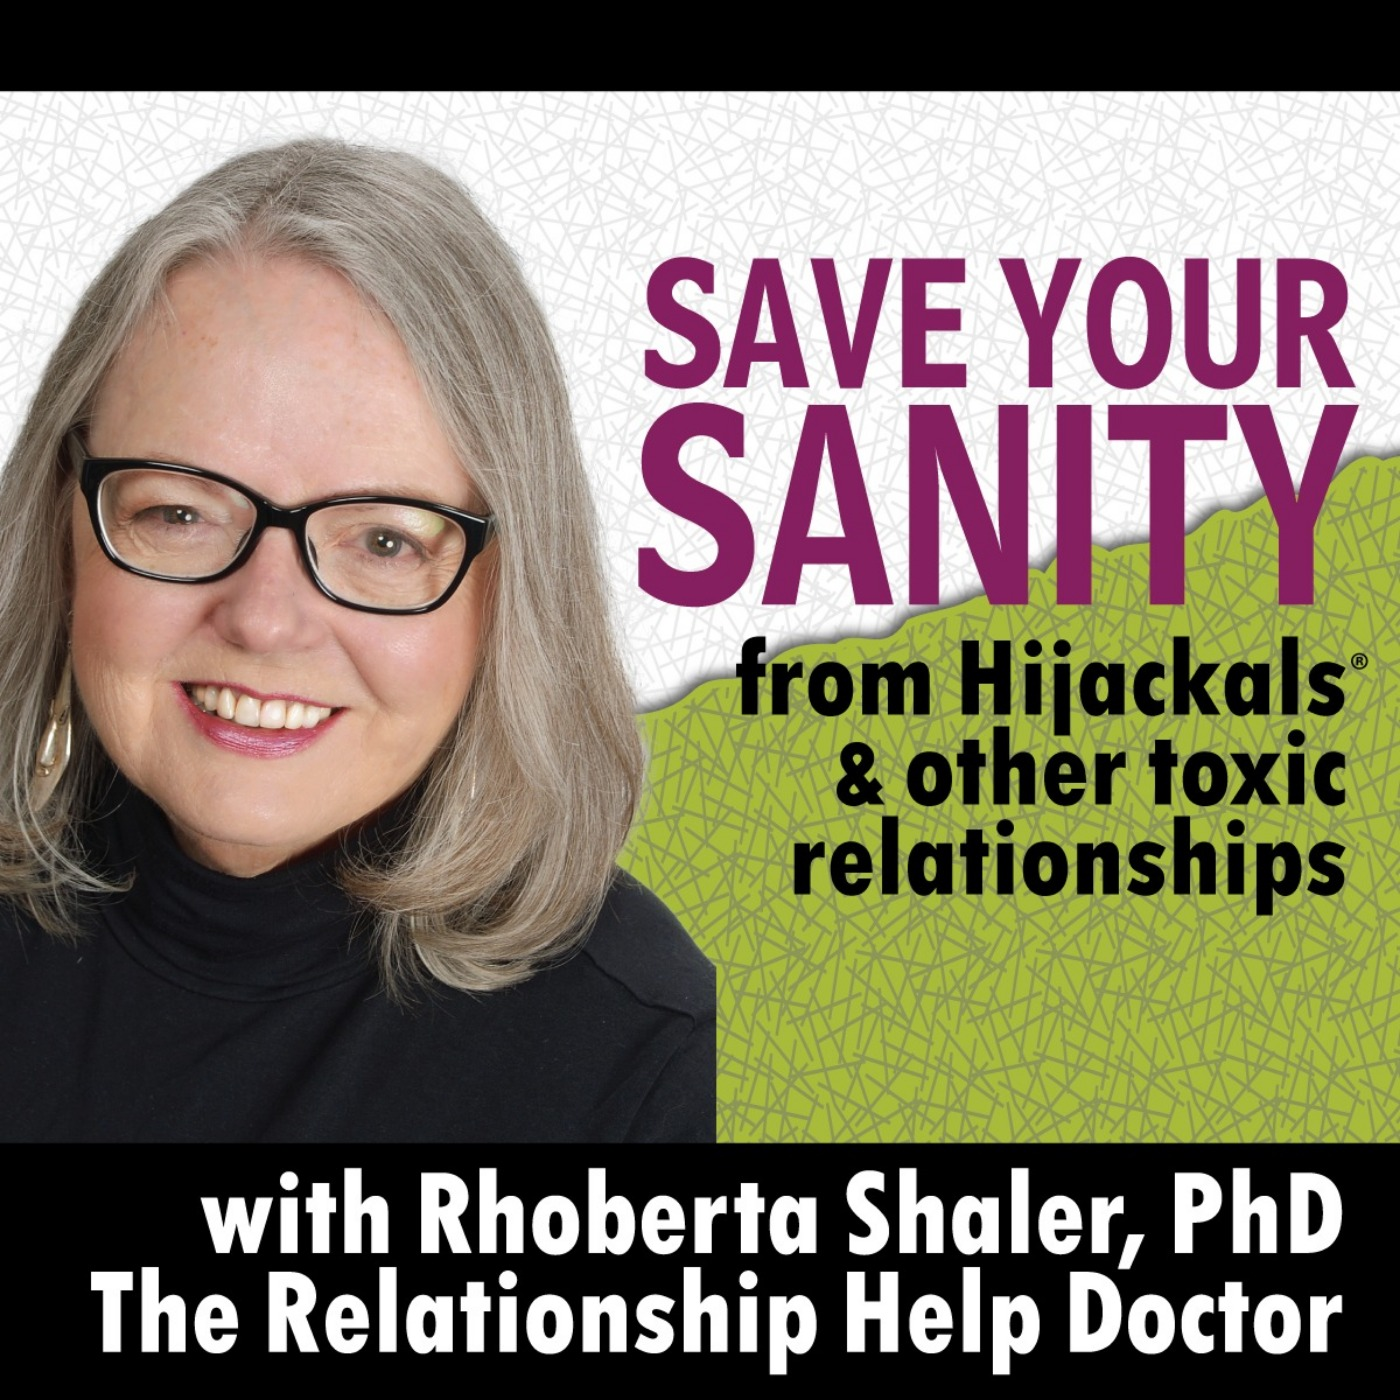 Save Your Sanity from Hijackals & Other Toxic Relationships